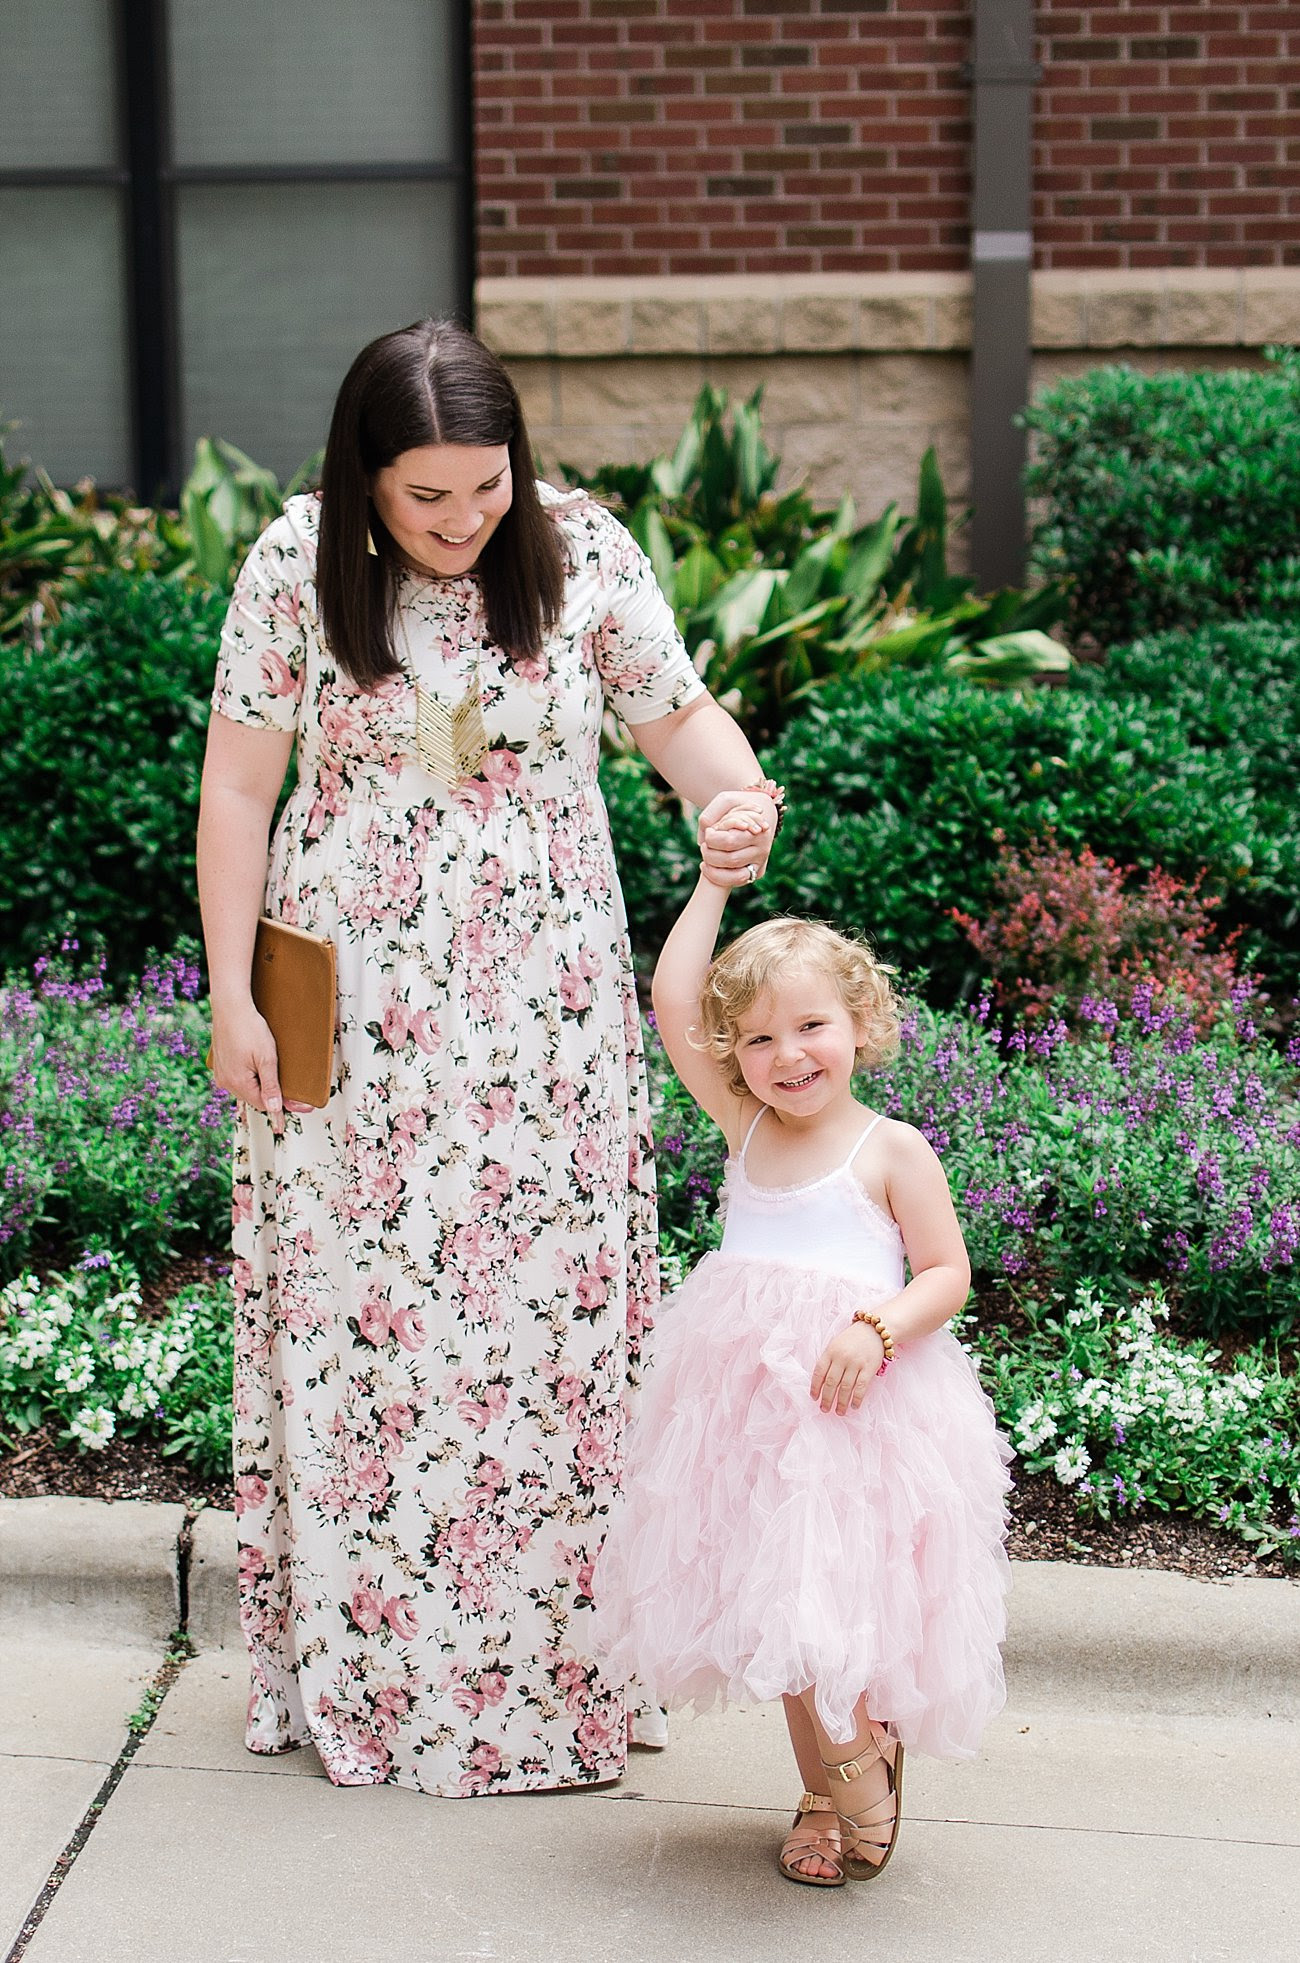 Wedding Guest Outfit Ethical Fashion Still Being Molly